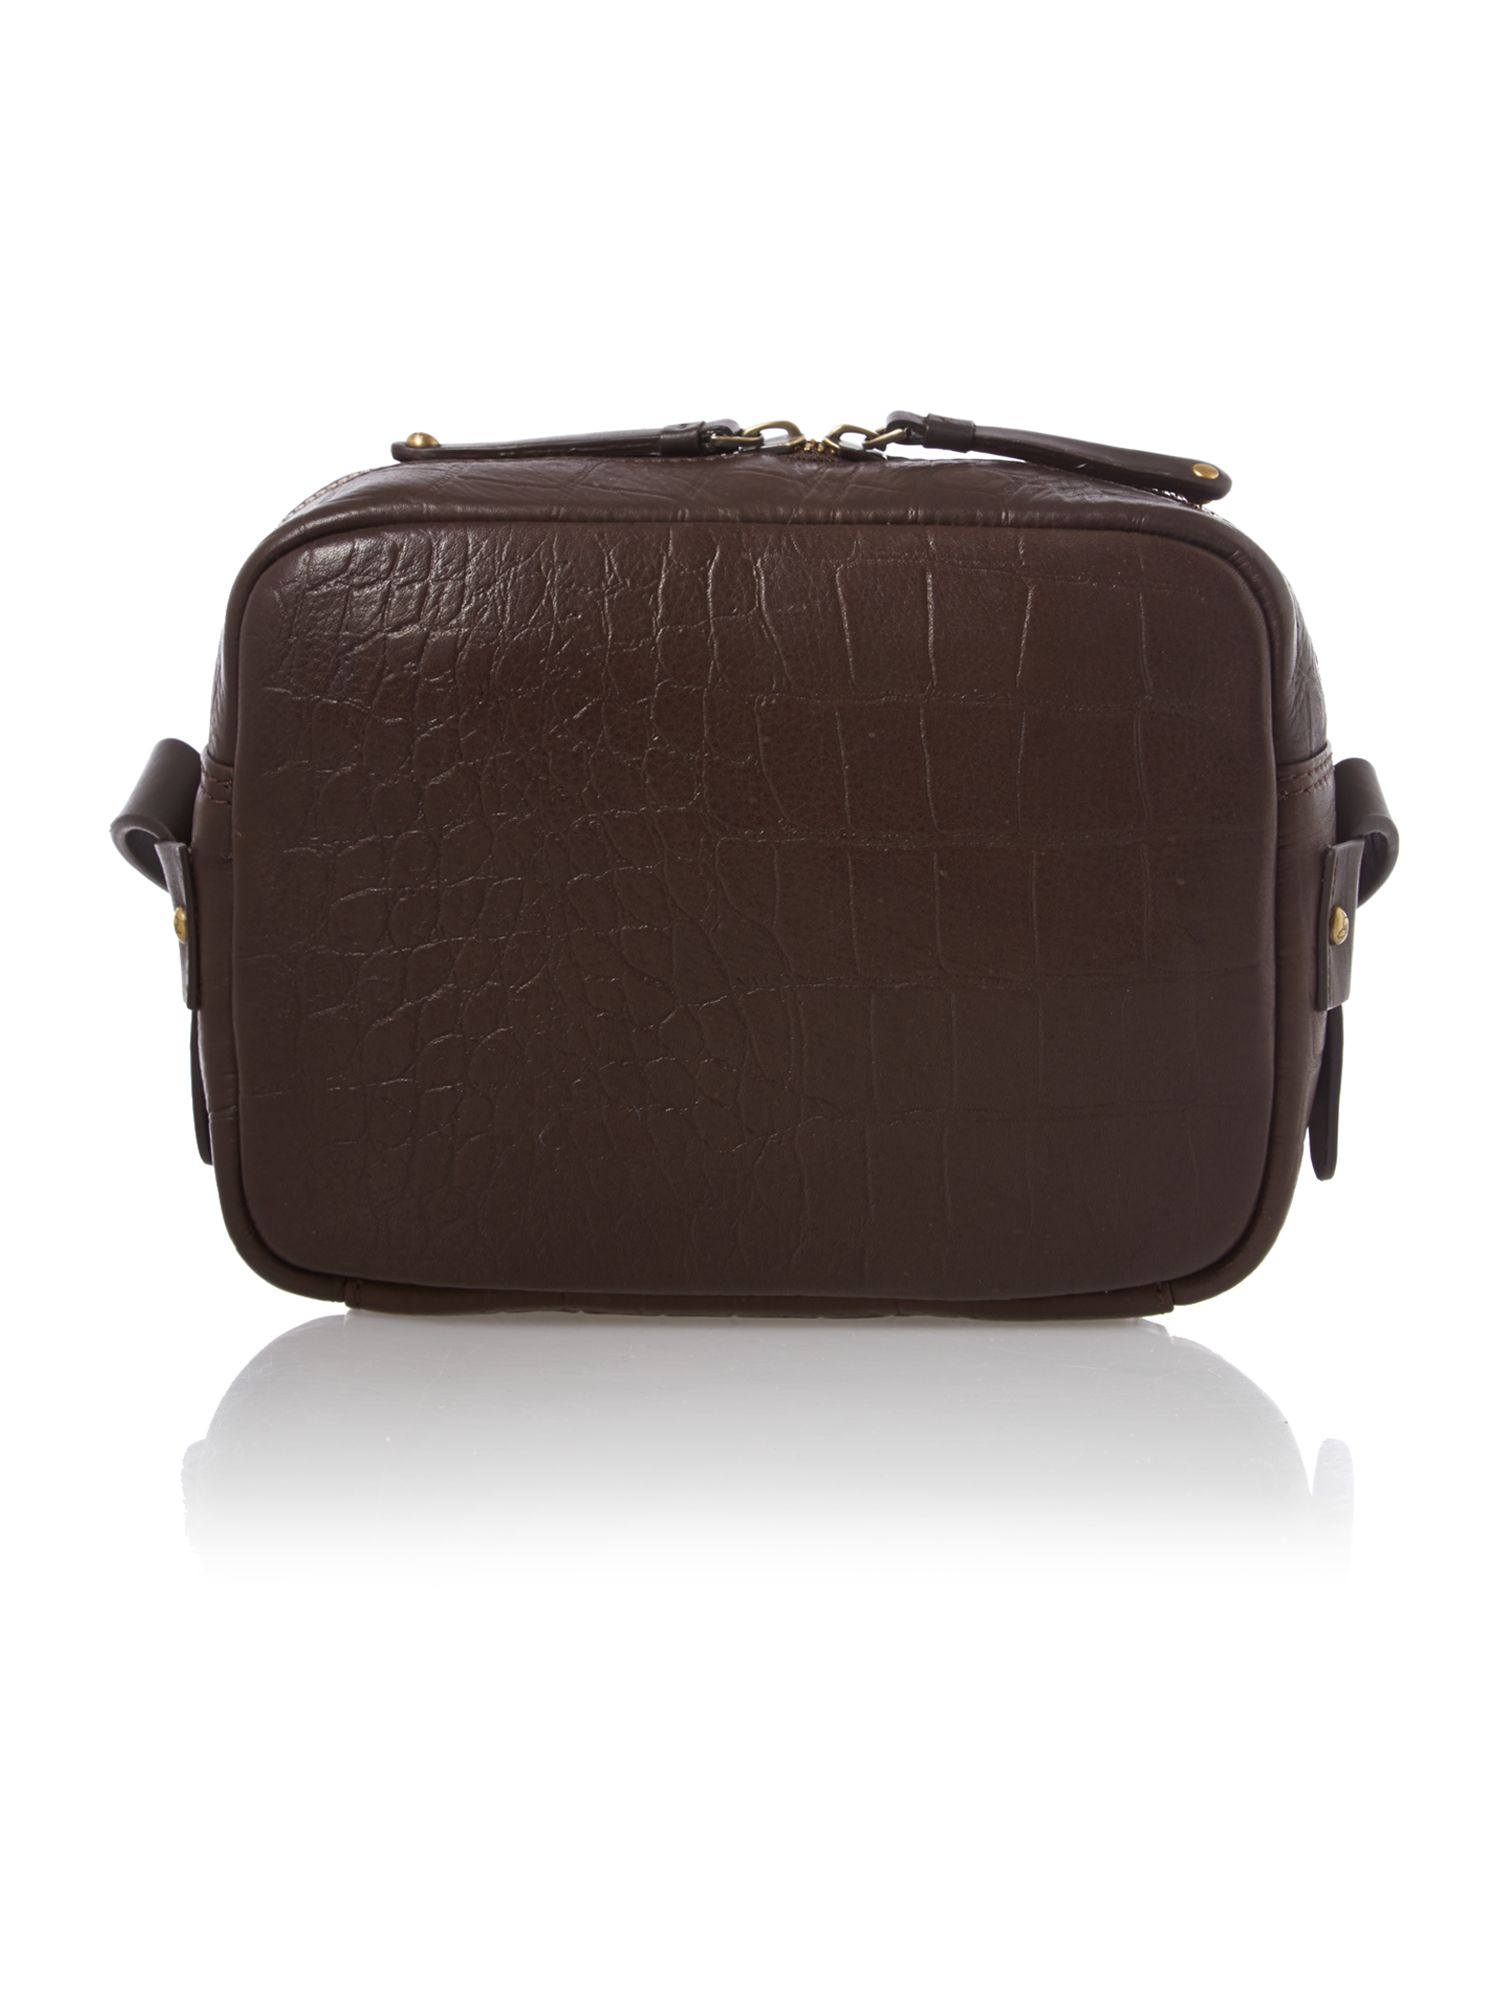 Marbury brown cross body bag